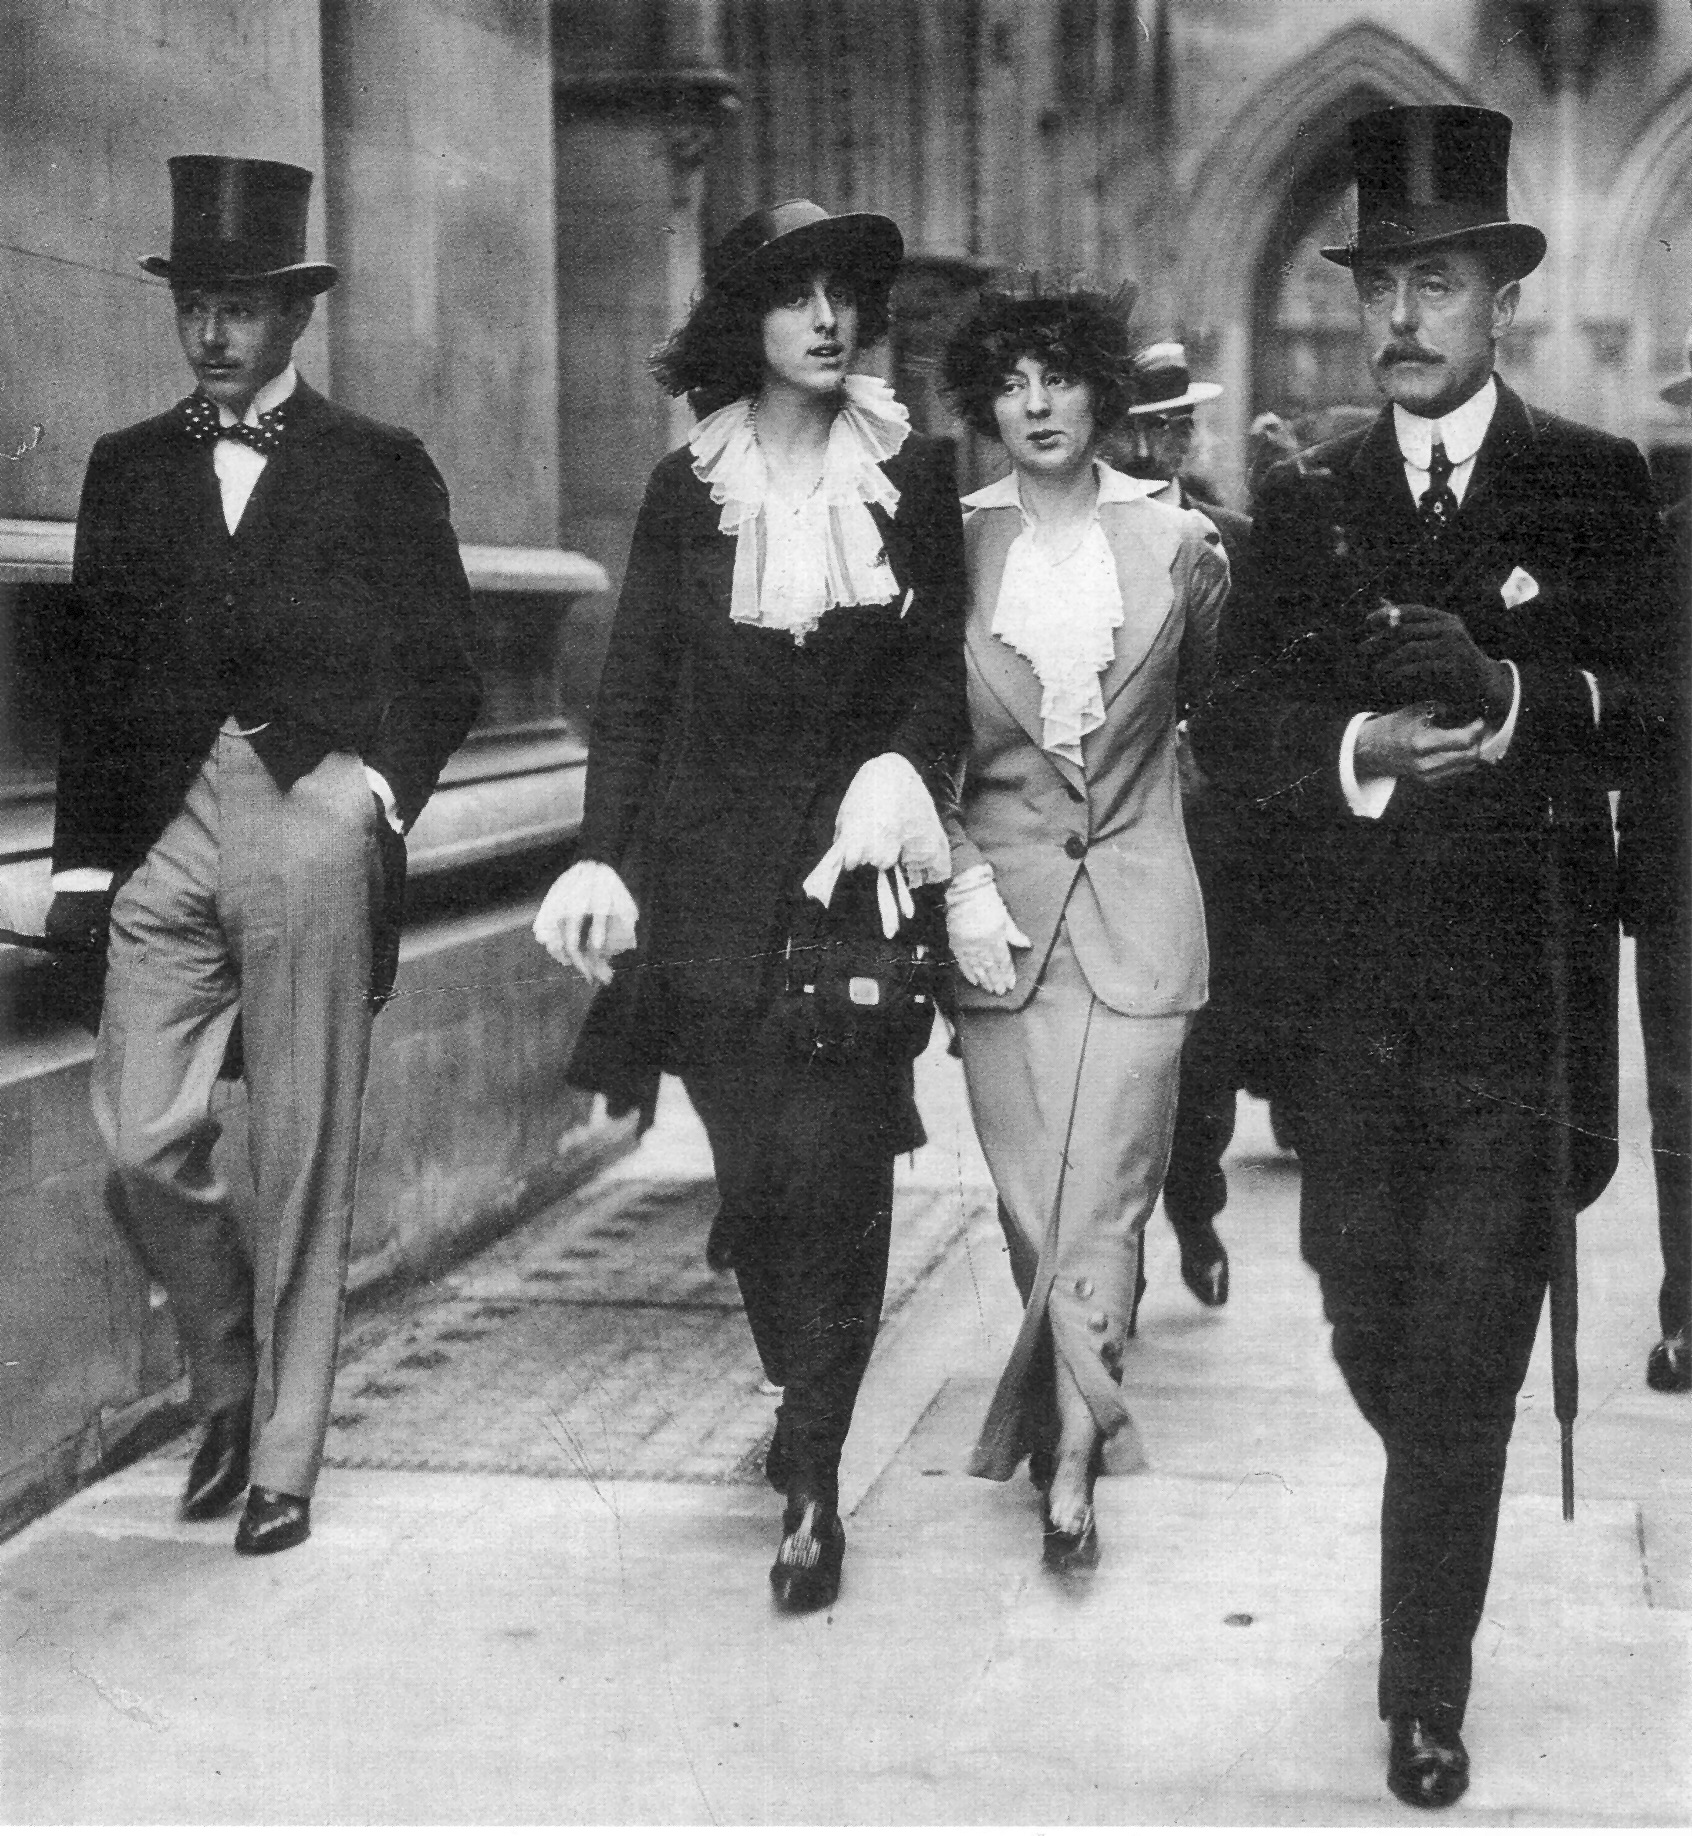 1913 (l. to r.) Harold Nickolson, Vita Sackville-West,